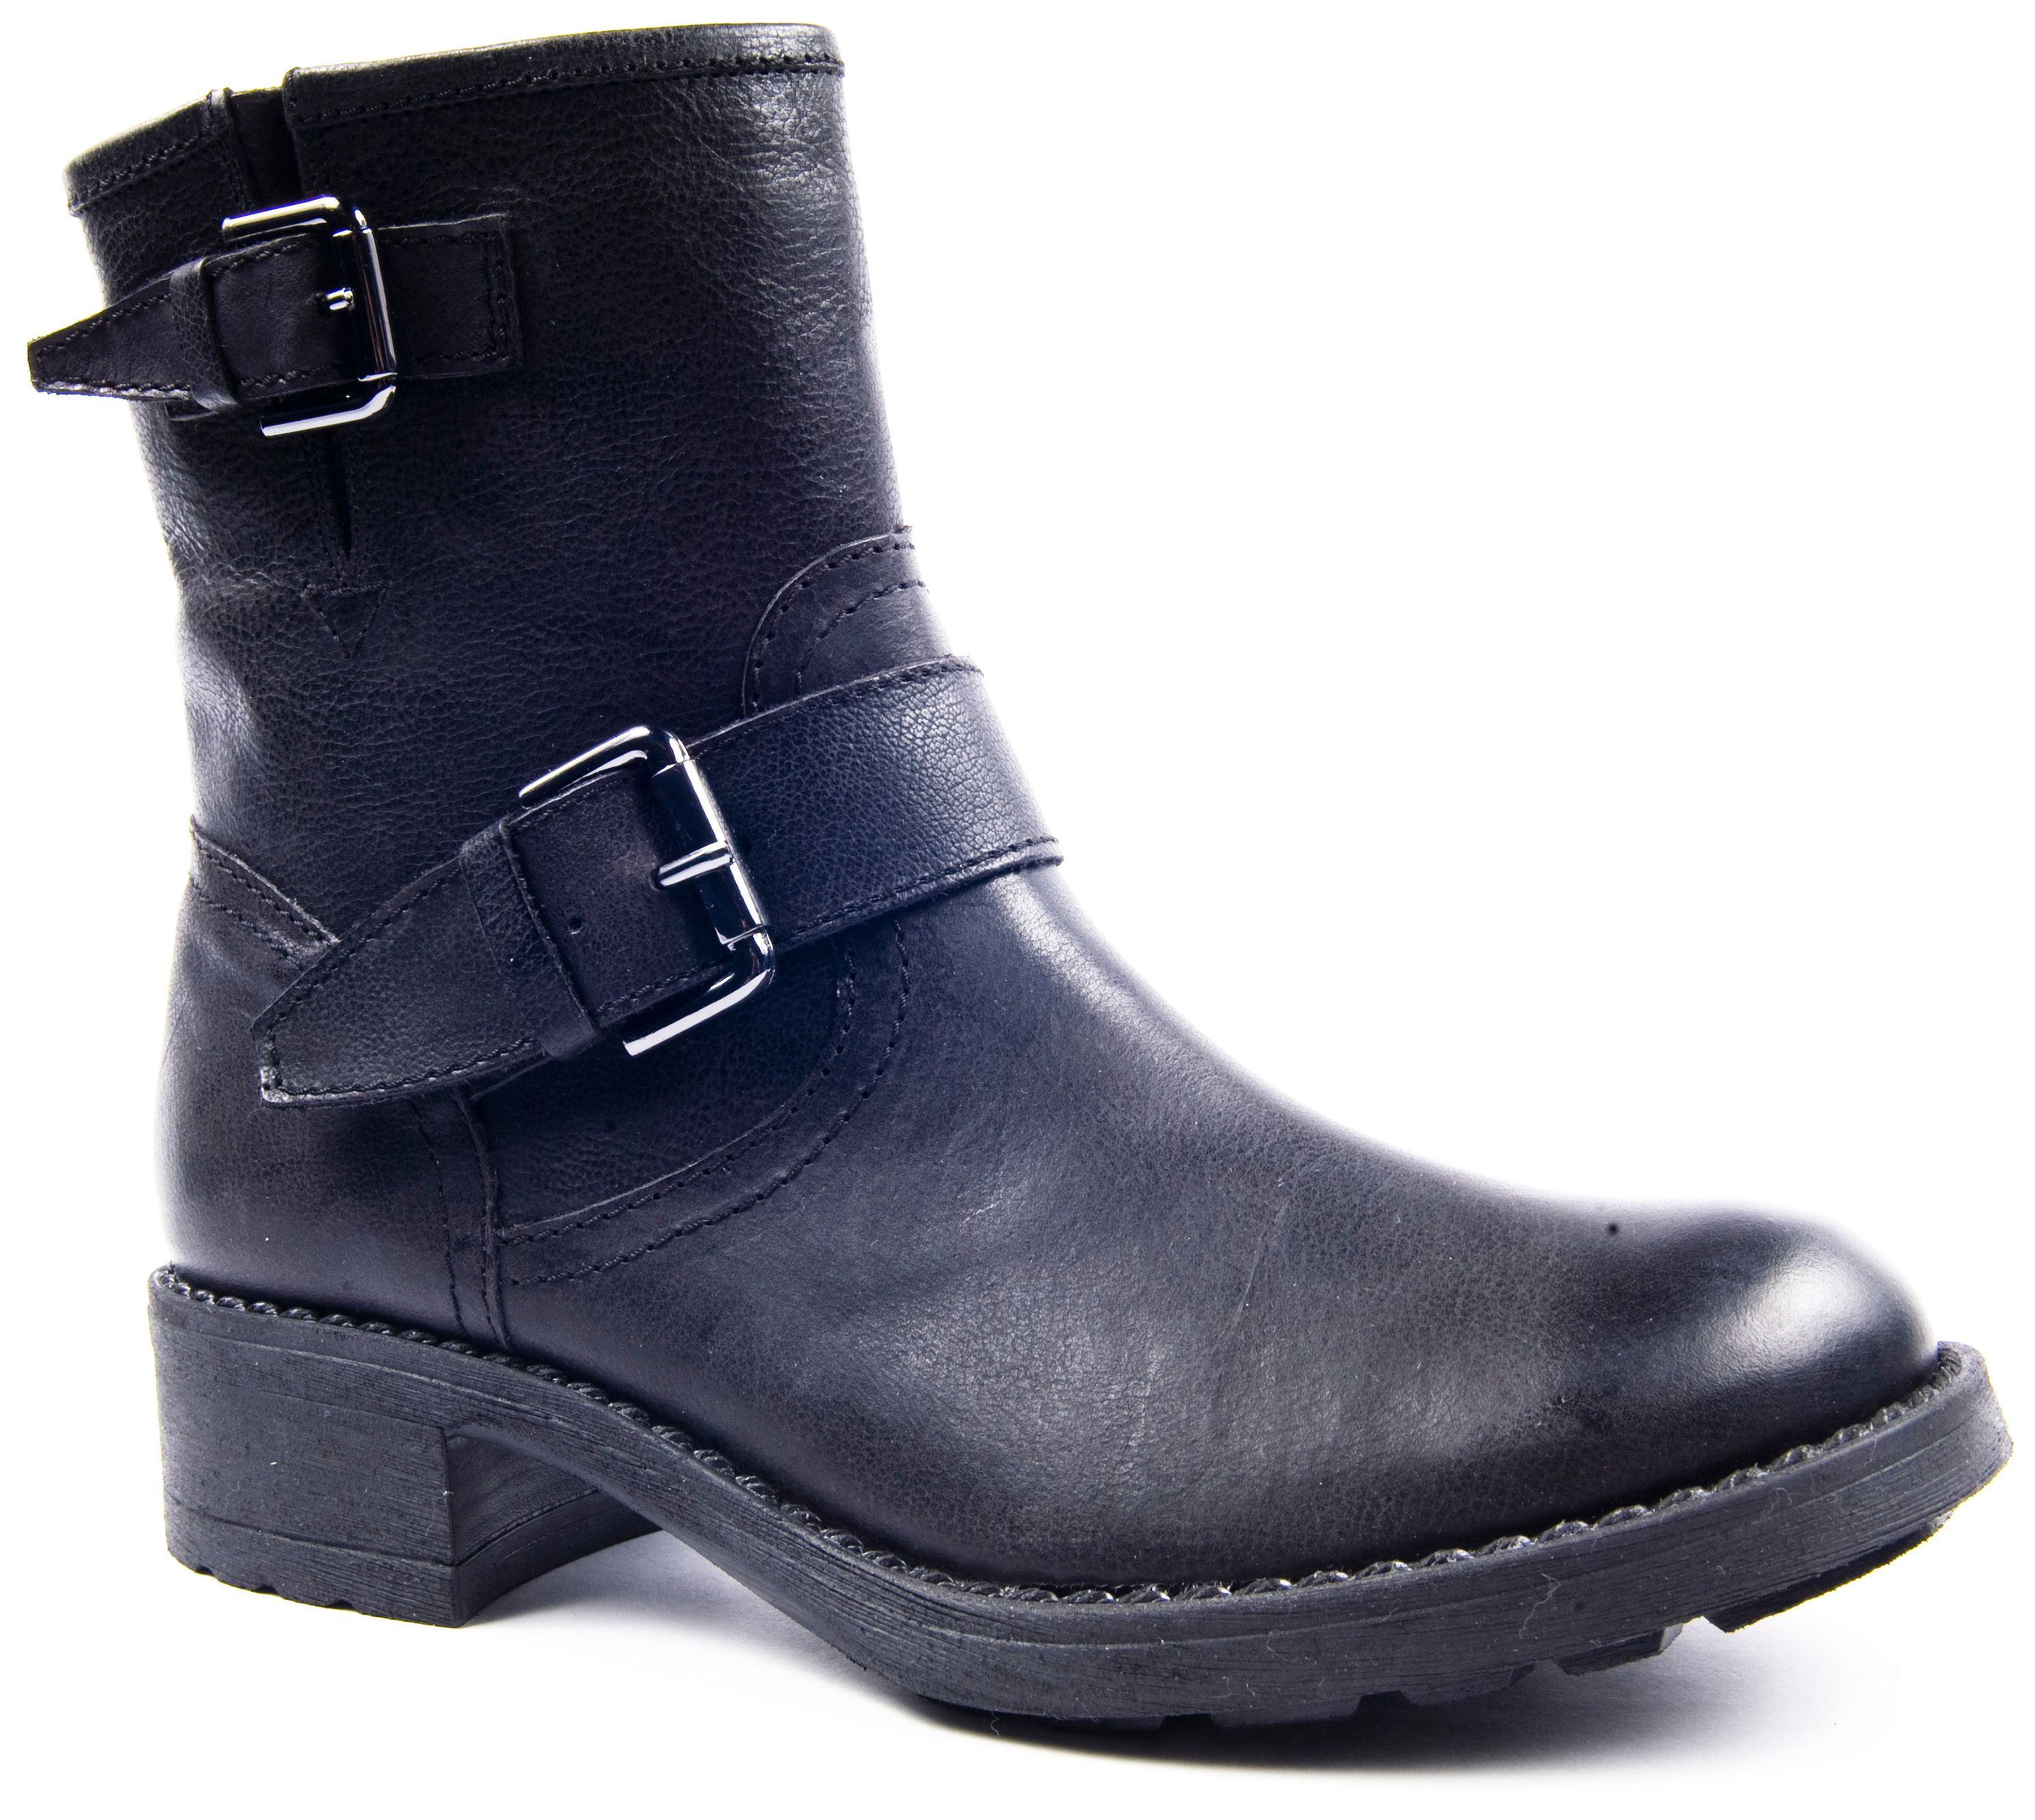 Oxford ankle boots